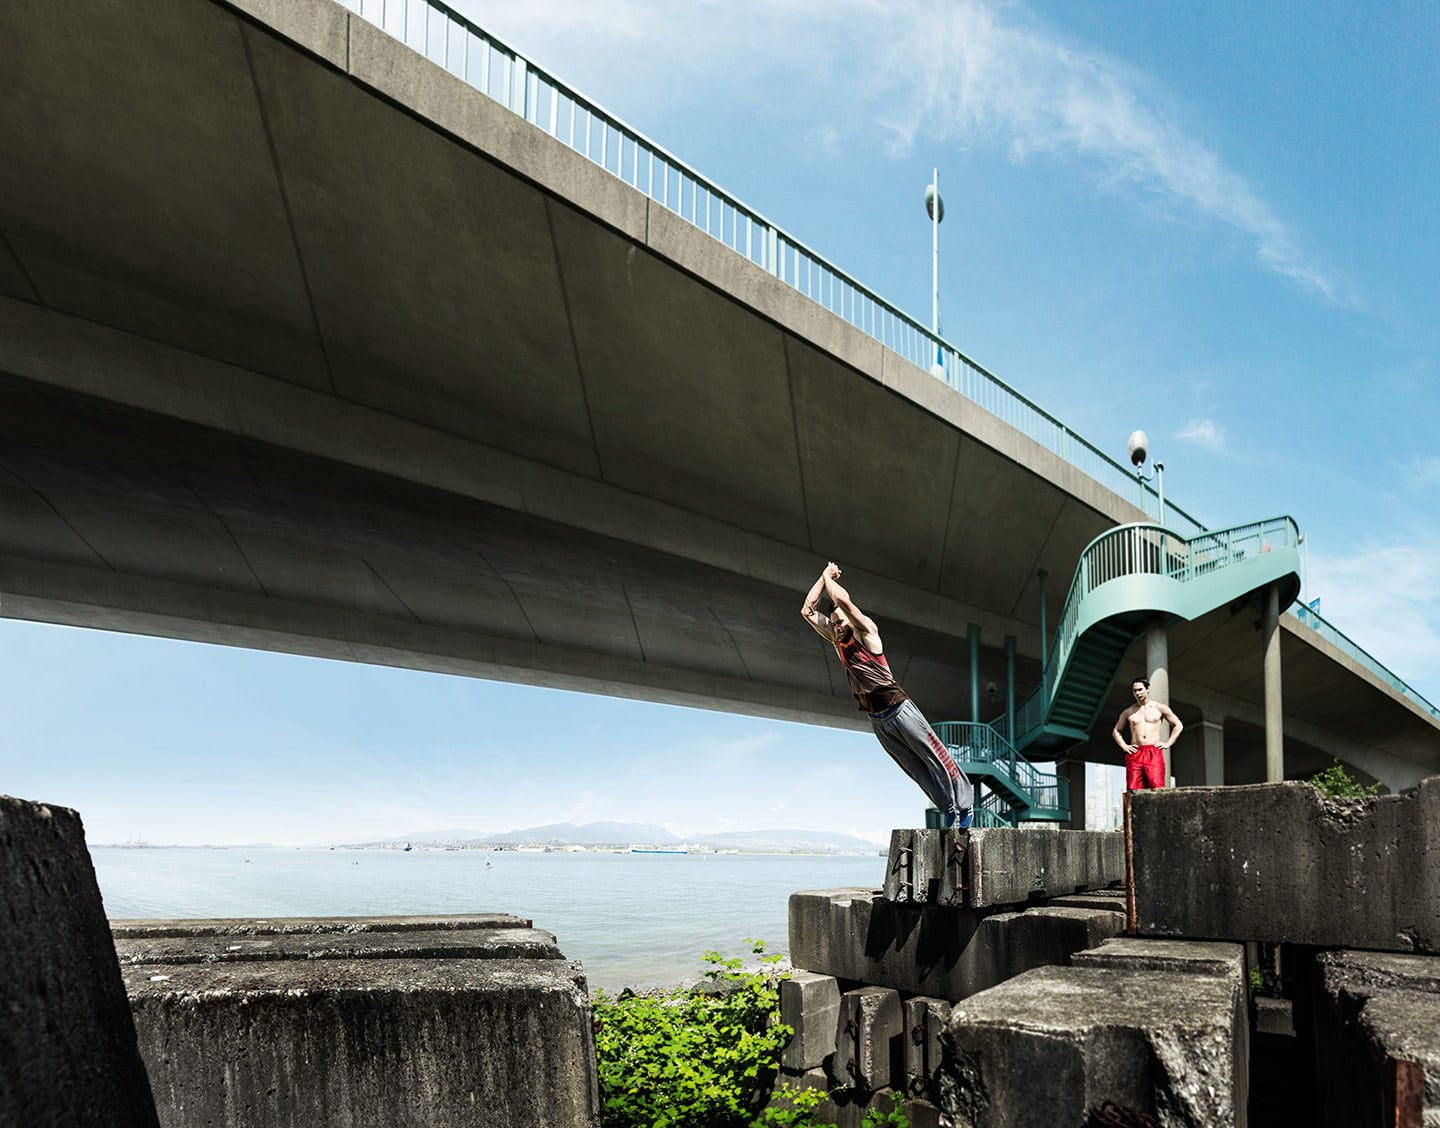 Parkour_Bridge_Gap_Jump_wall_run_Rene_Rod_McLean_g